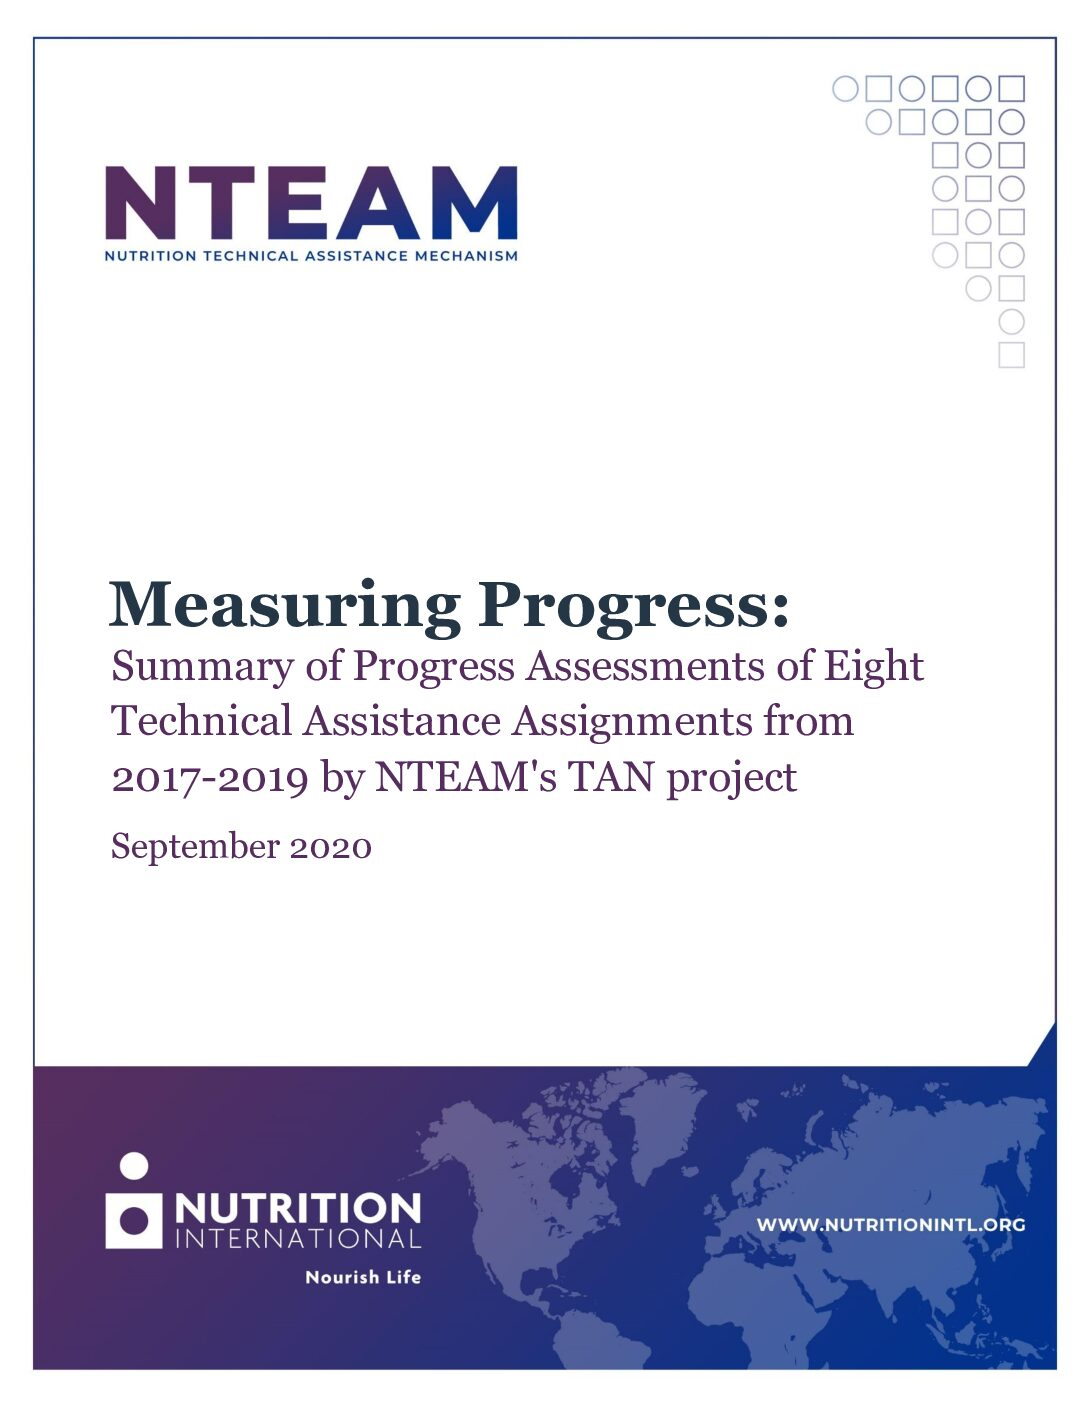 Measuring Progress: Summary of Progress Assessments of Eight Technical Assistance Assignments from 2017-2019 by NTEAM's TAN project thumbnail